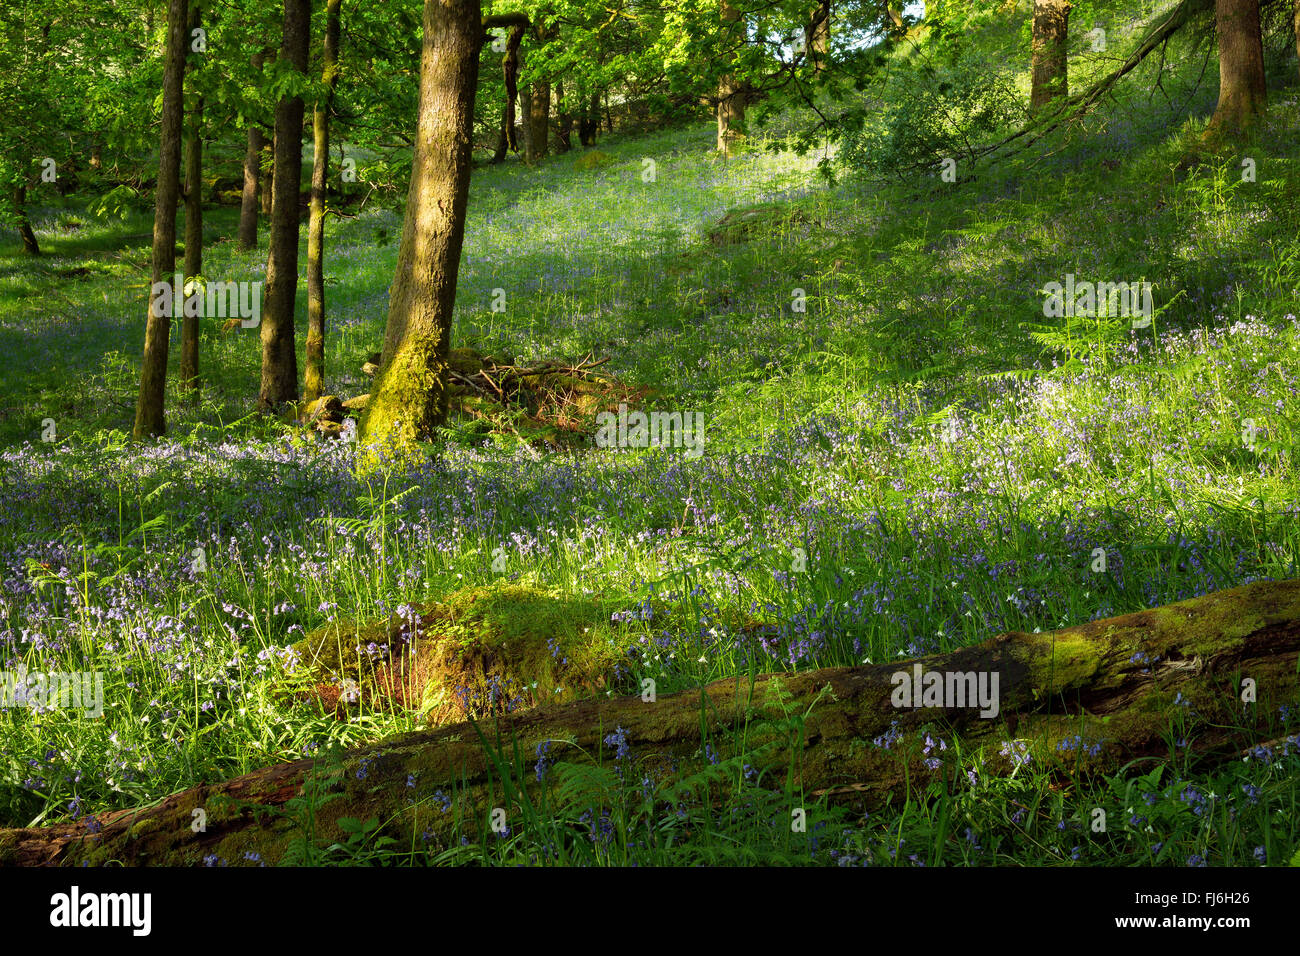 Sunlit bluebells in a woodland glade near Grasmere, Lake District, England - Stock Image